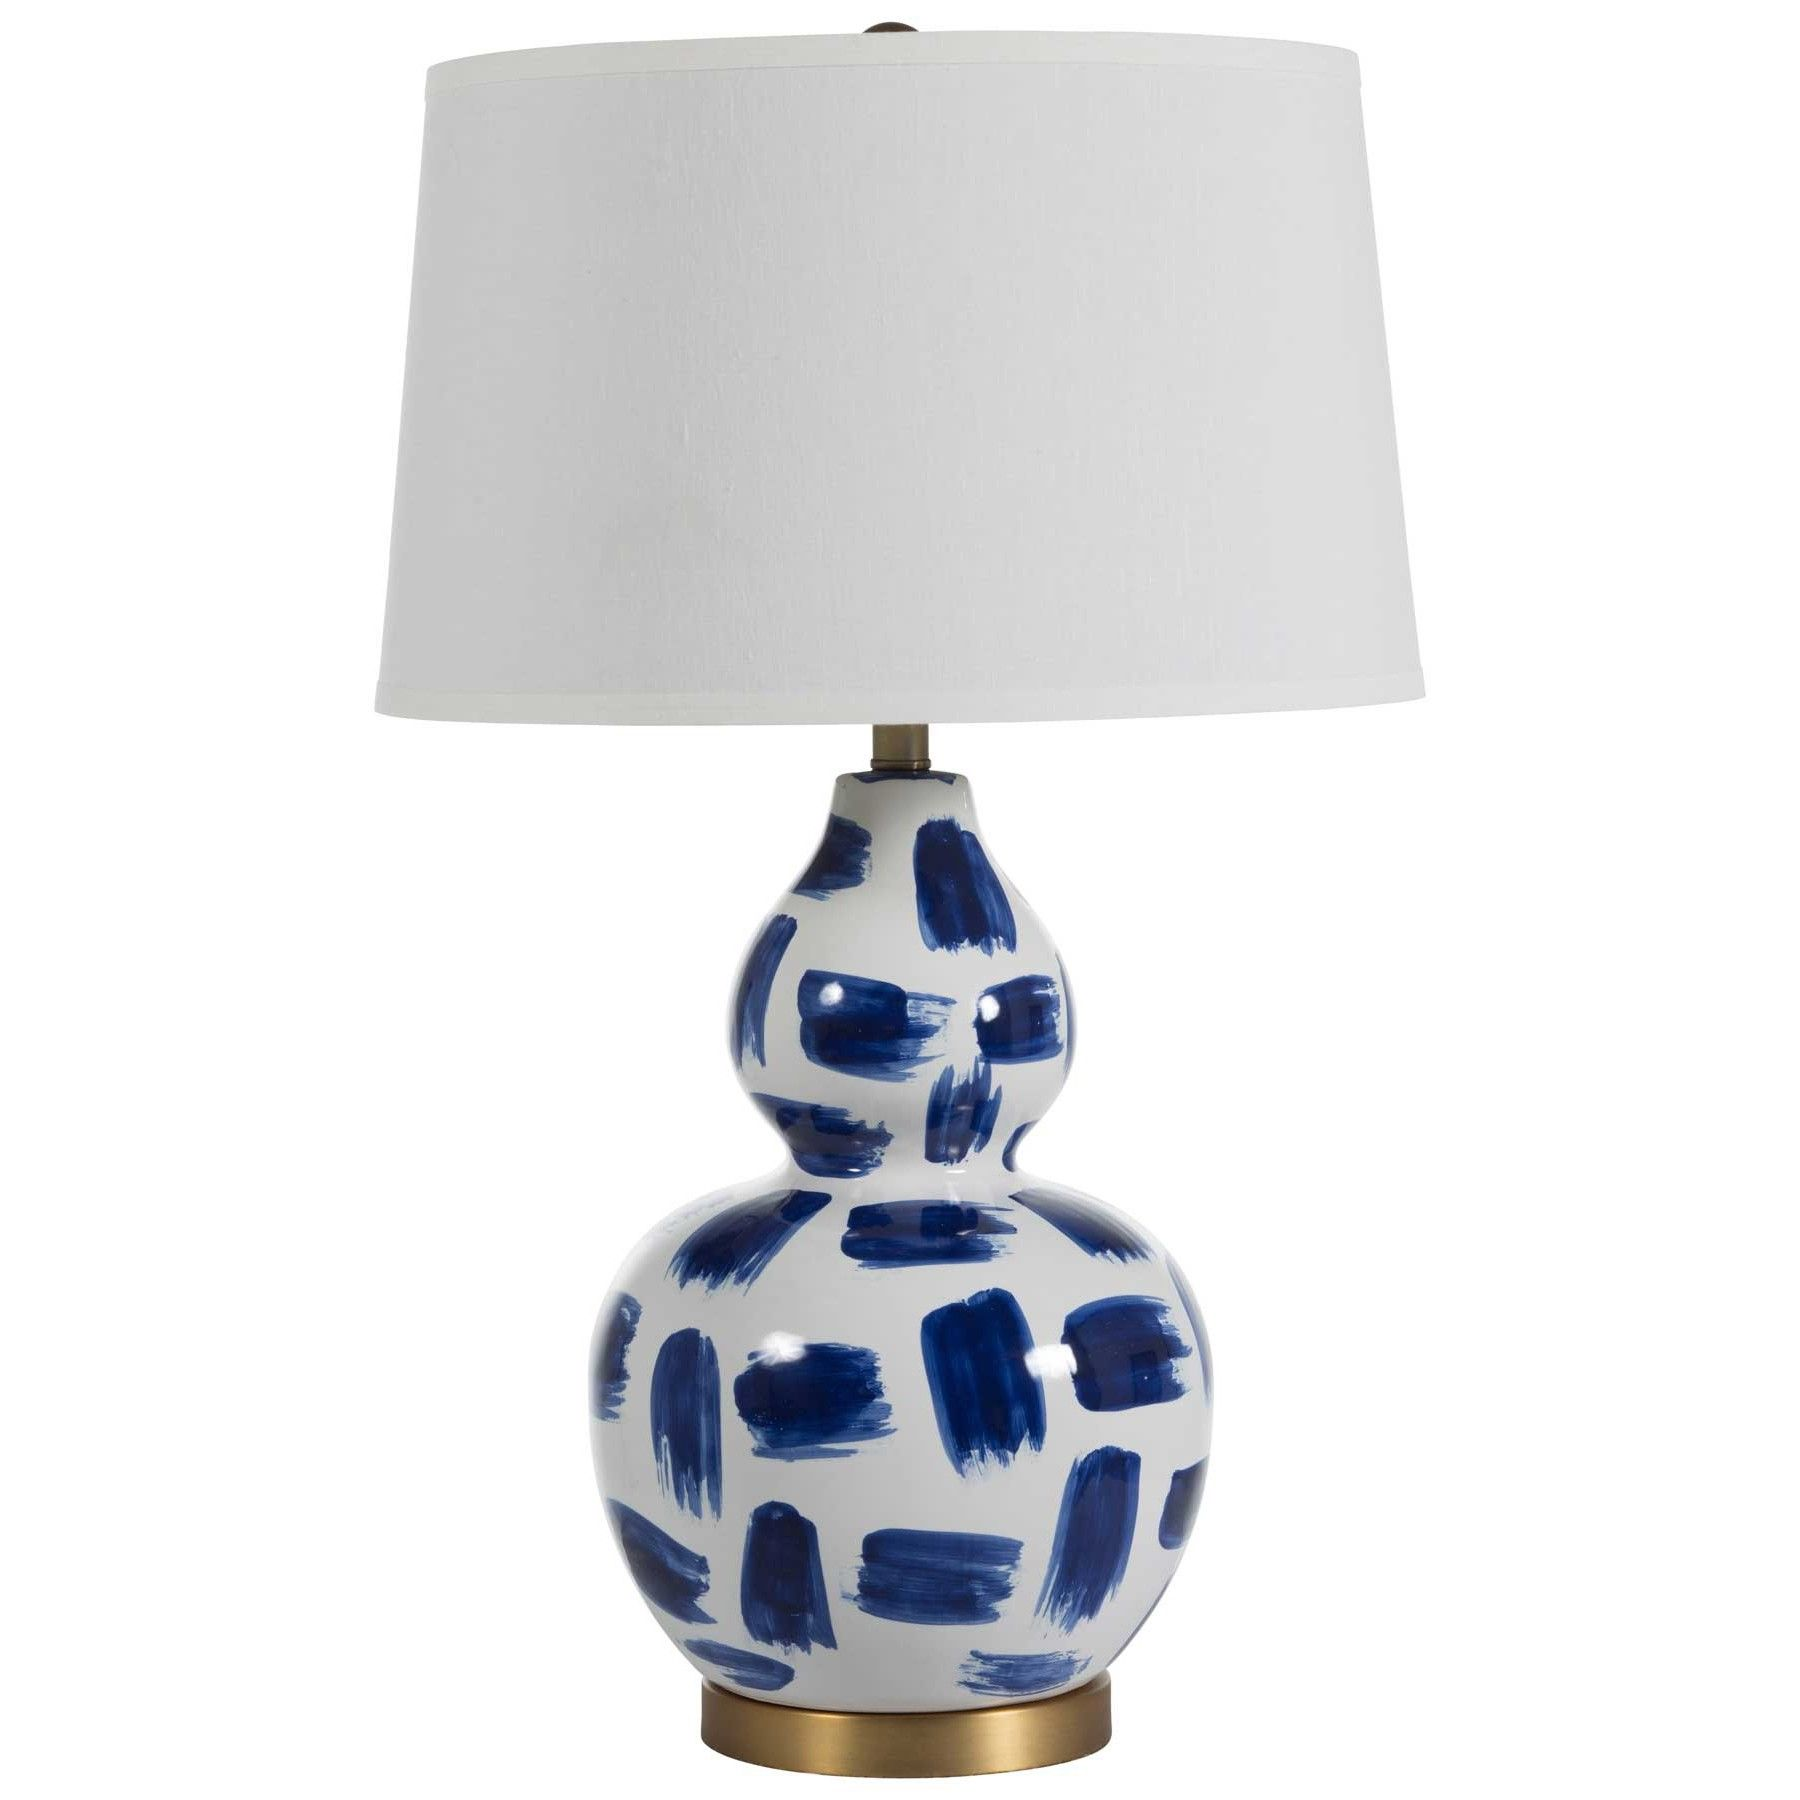 Gabby Luca Table Lamp Blue And White Lamp Ceramic Table Lamps Lamp